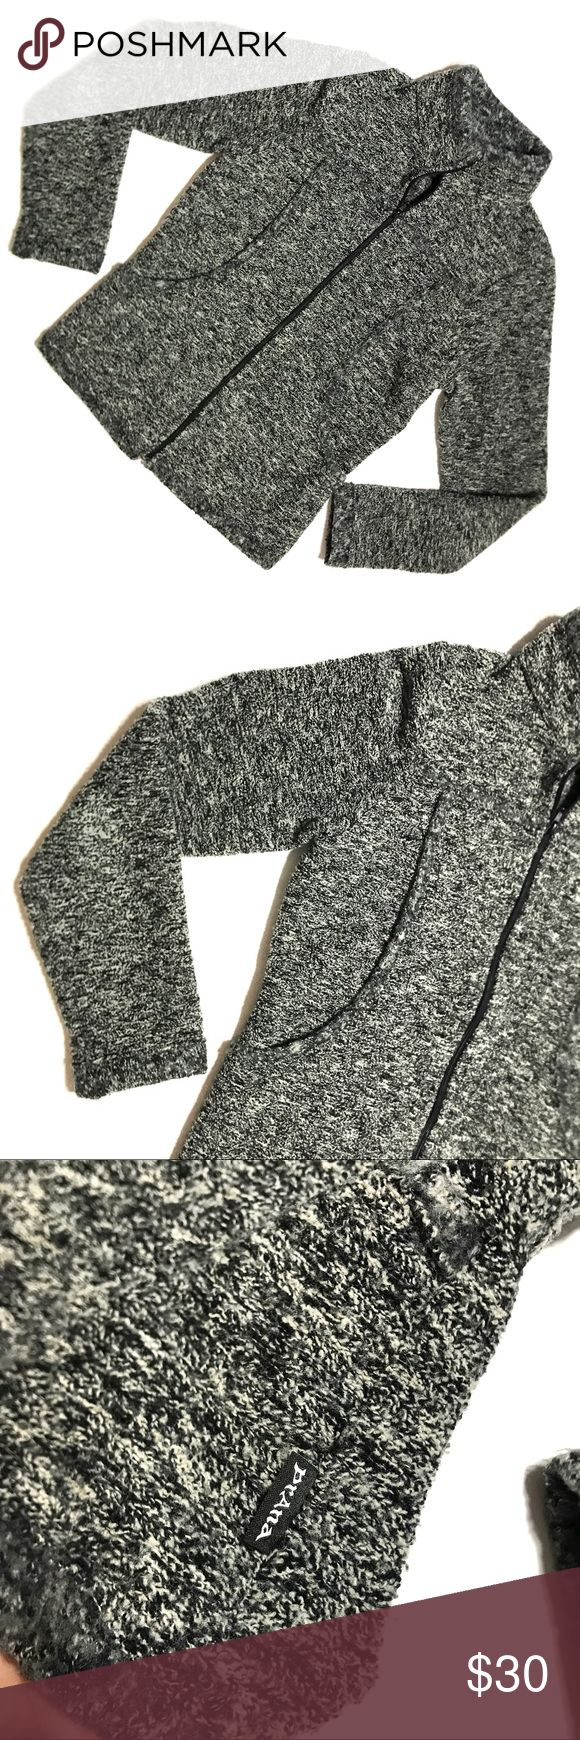 """Prana Black White Heathered Knit Zip Up Sweater Prana Black White Heathered Knit Zip Up Long Sleeve Sweater Jacket Womens Small  *Good Used Condition. A bit of wear on elbows, please see pictures.  Measurements: 34"""" Bust 24"""" Length Prana Jackets & Coats"""